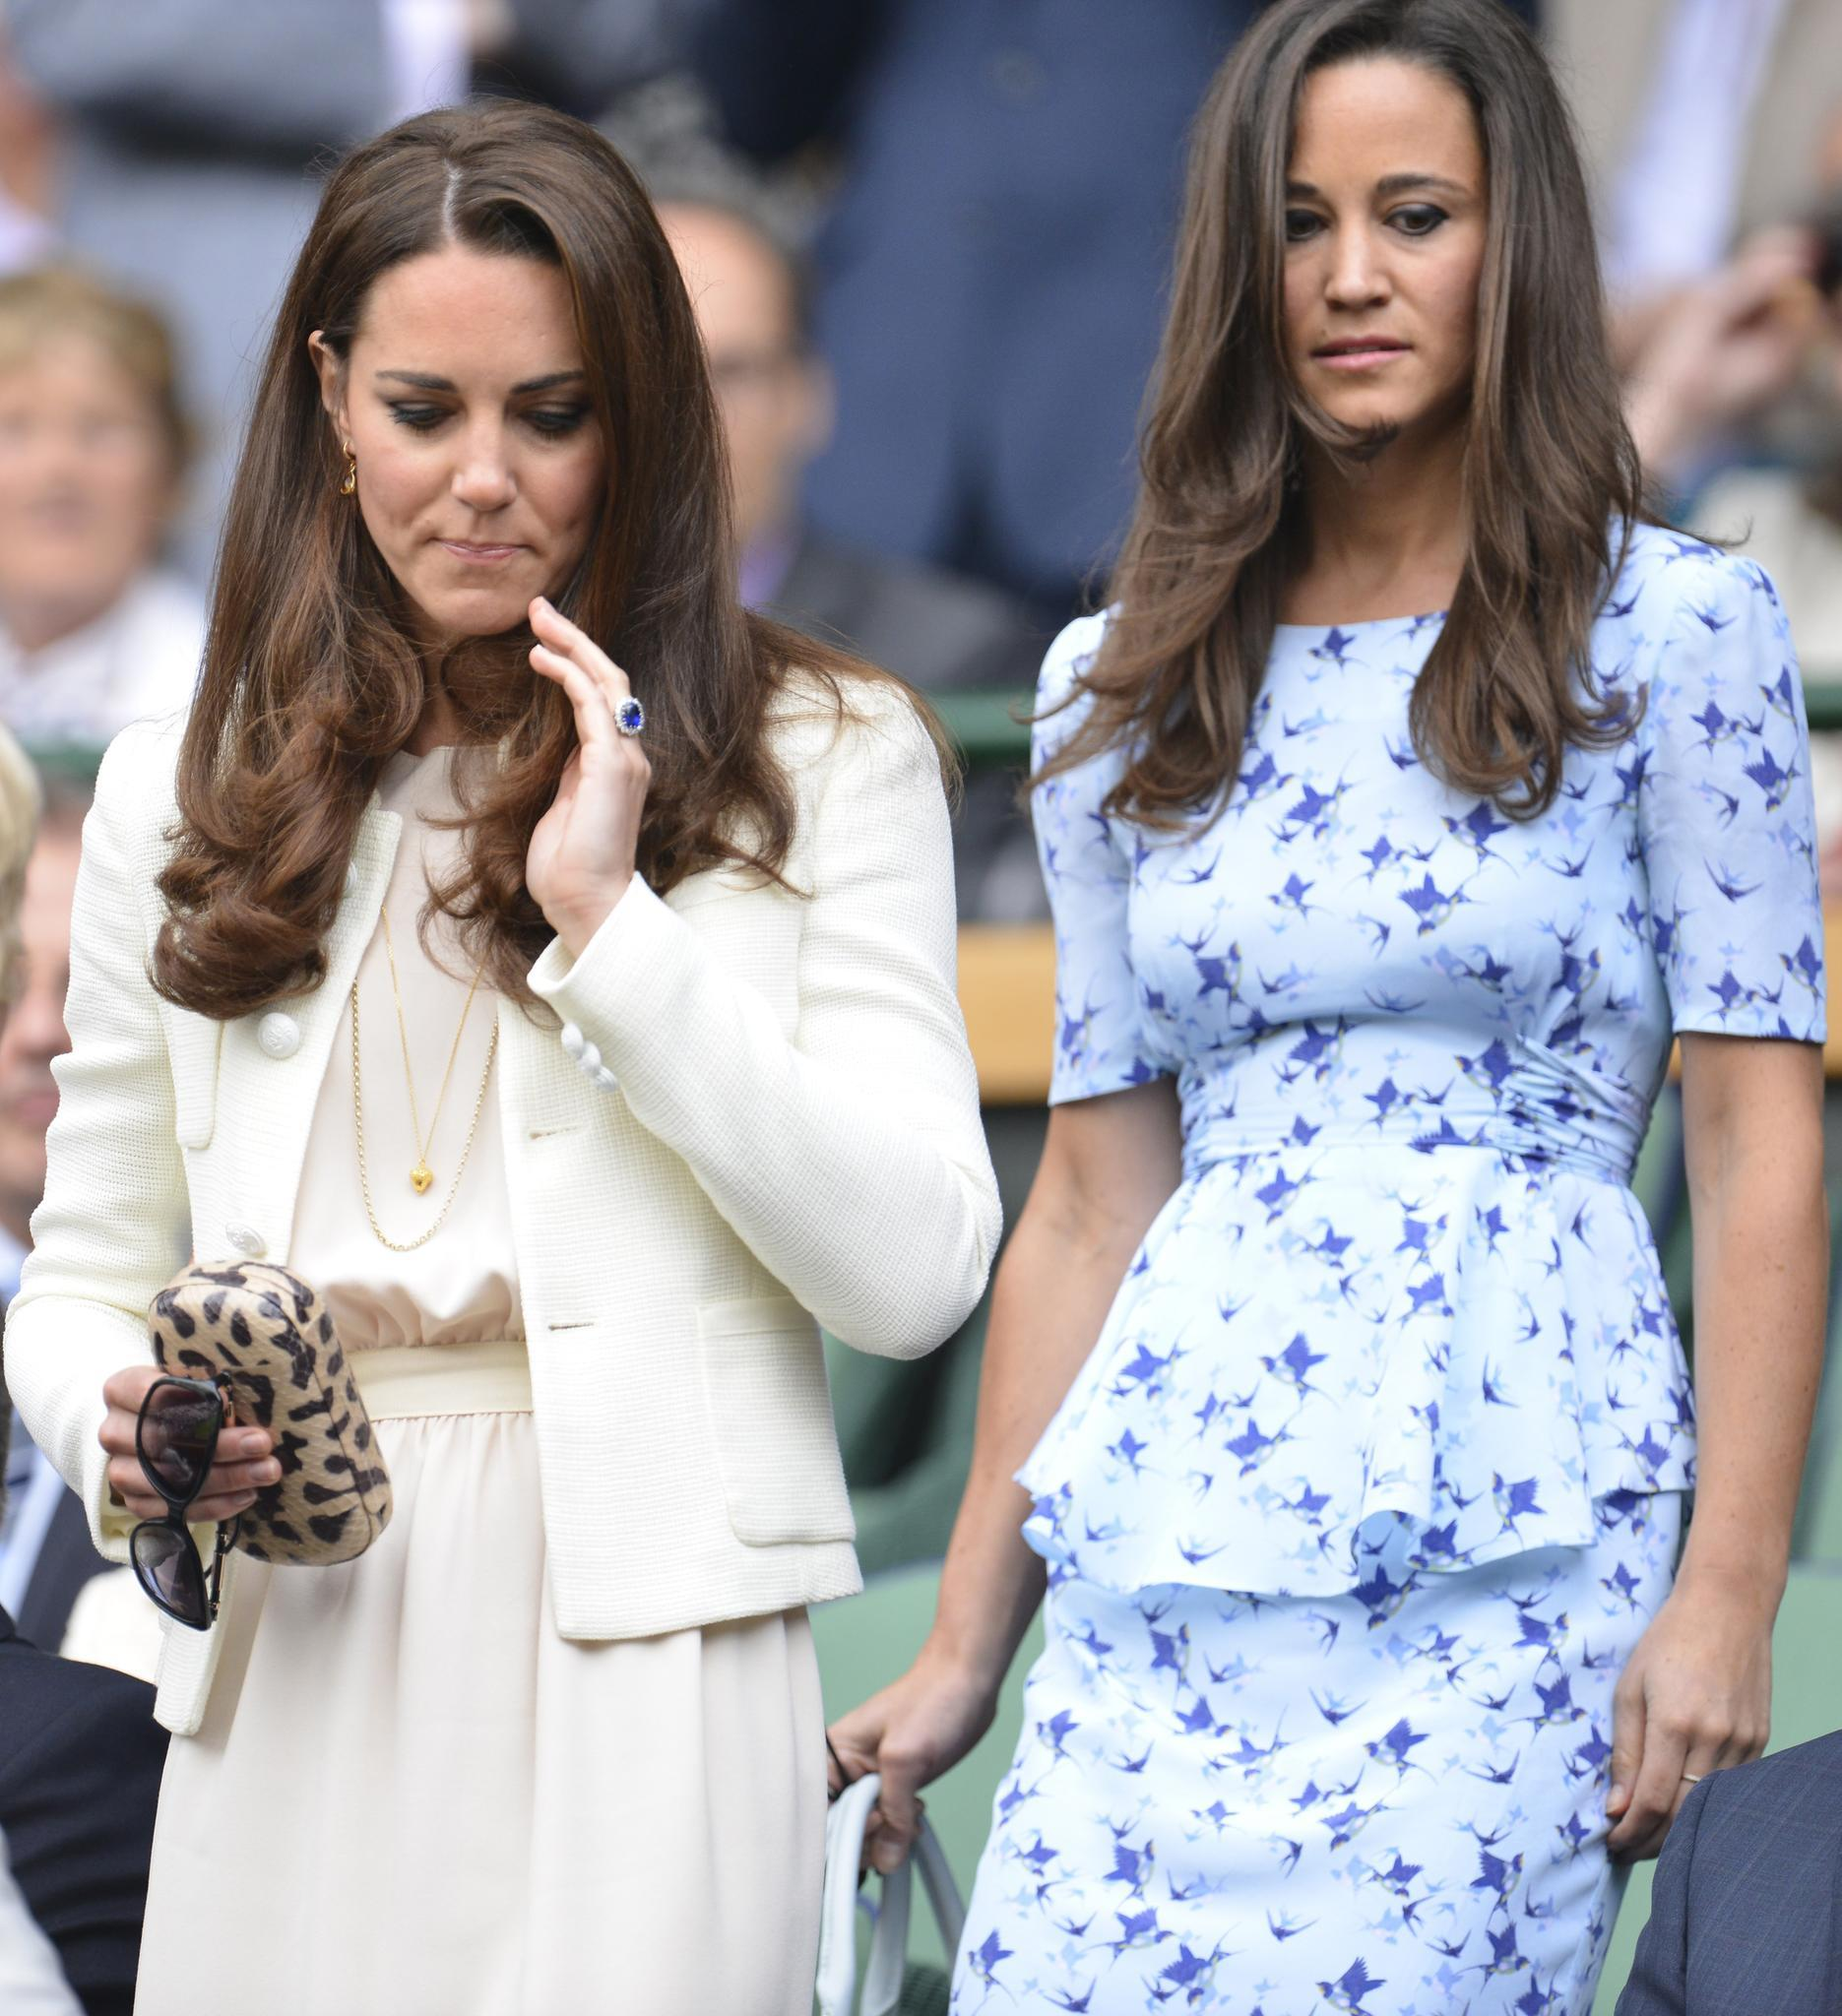 Herzogin Kate + Pippa Middleton